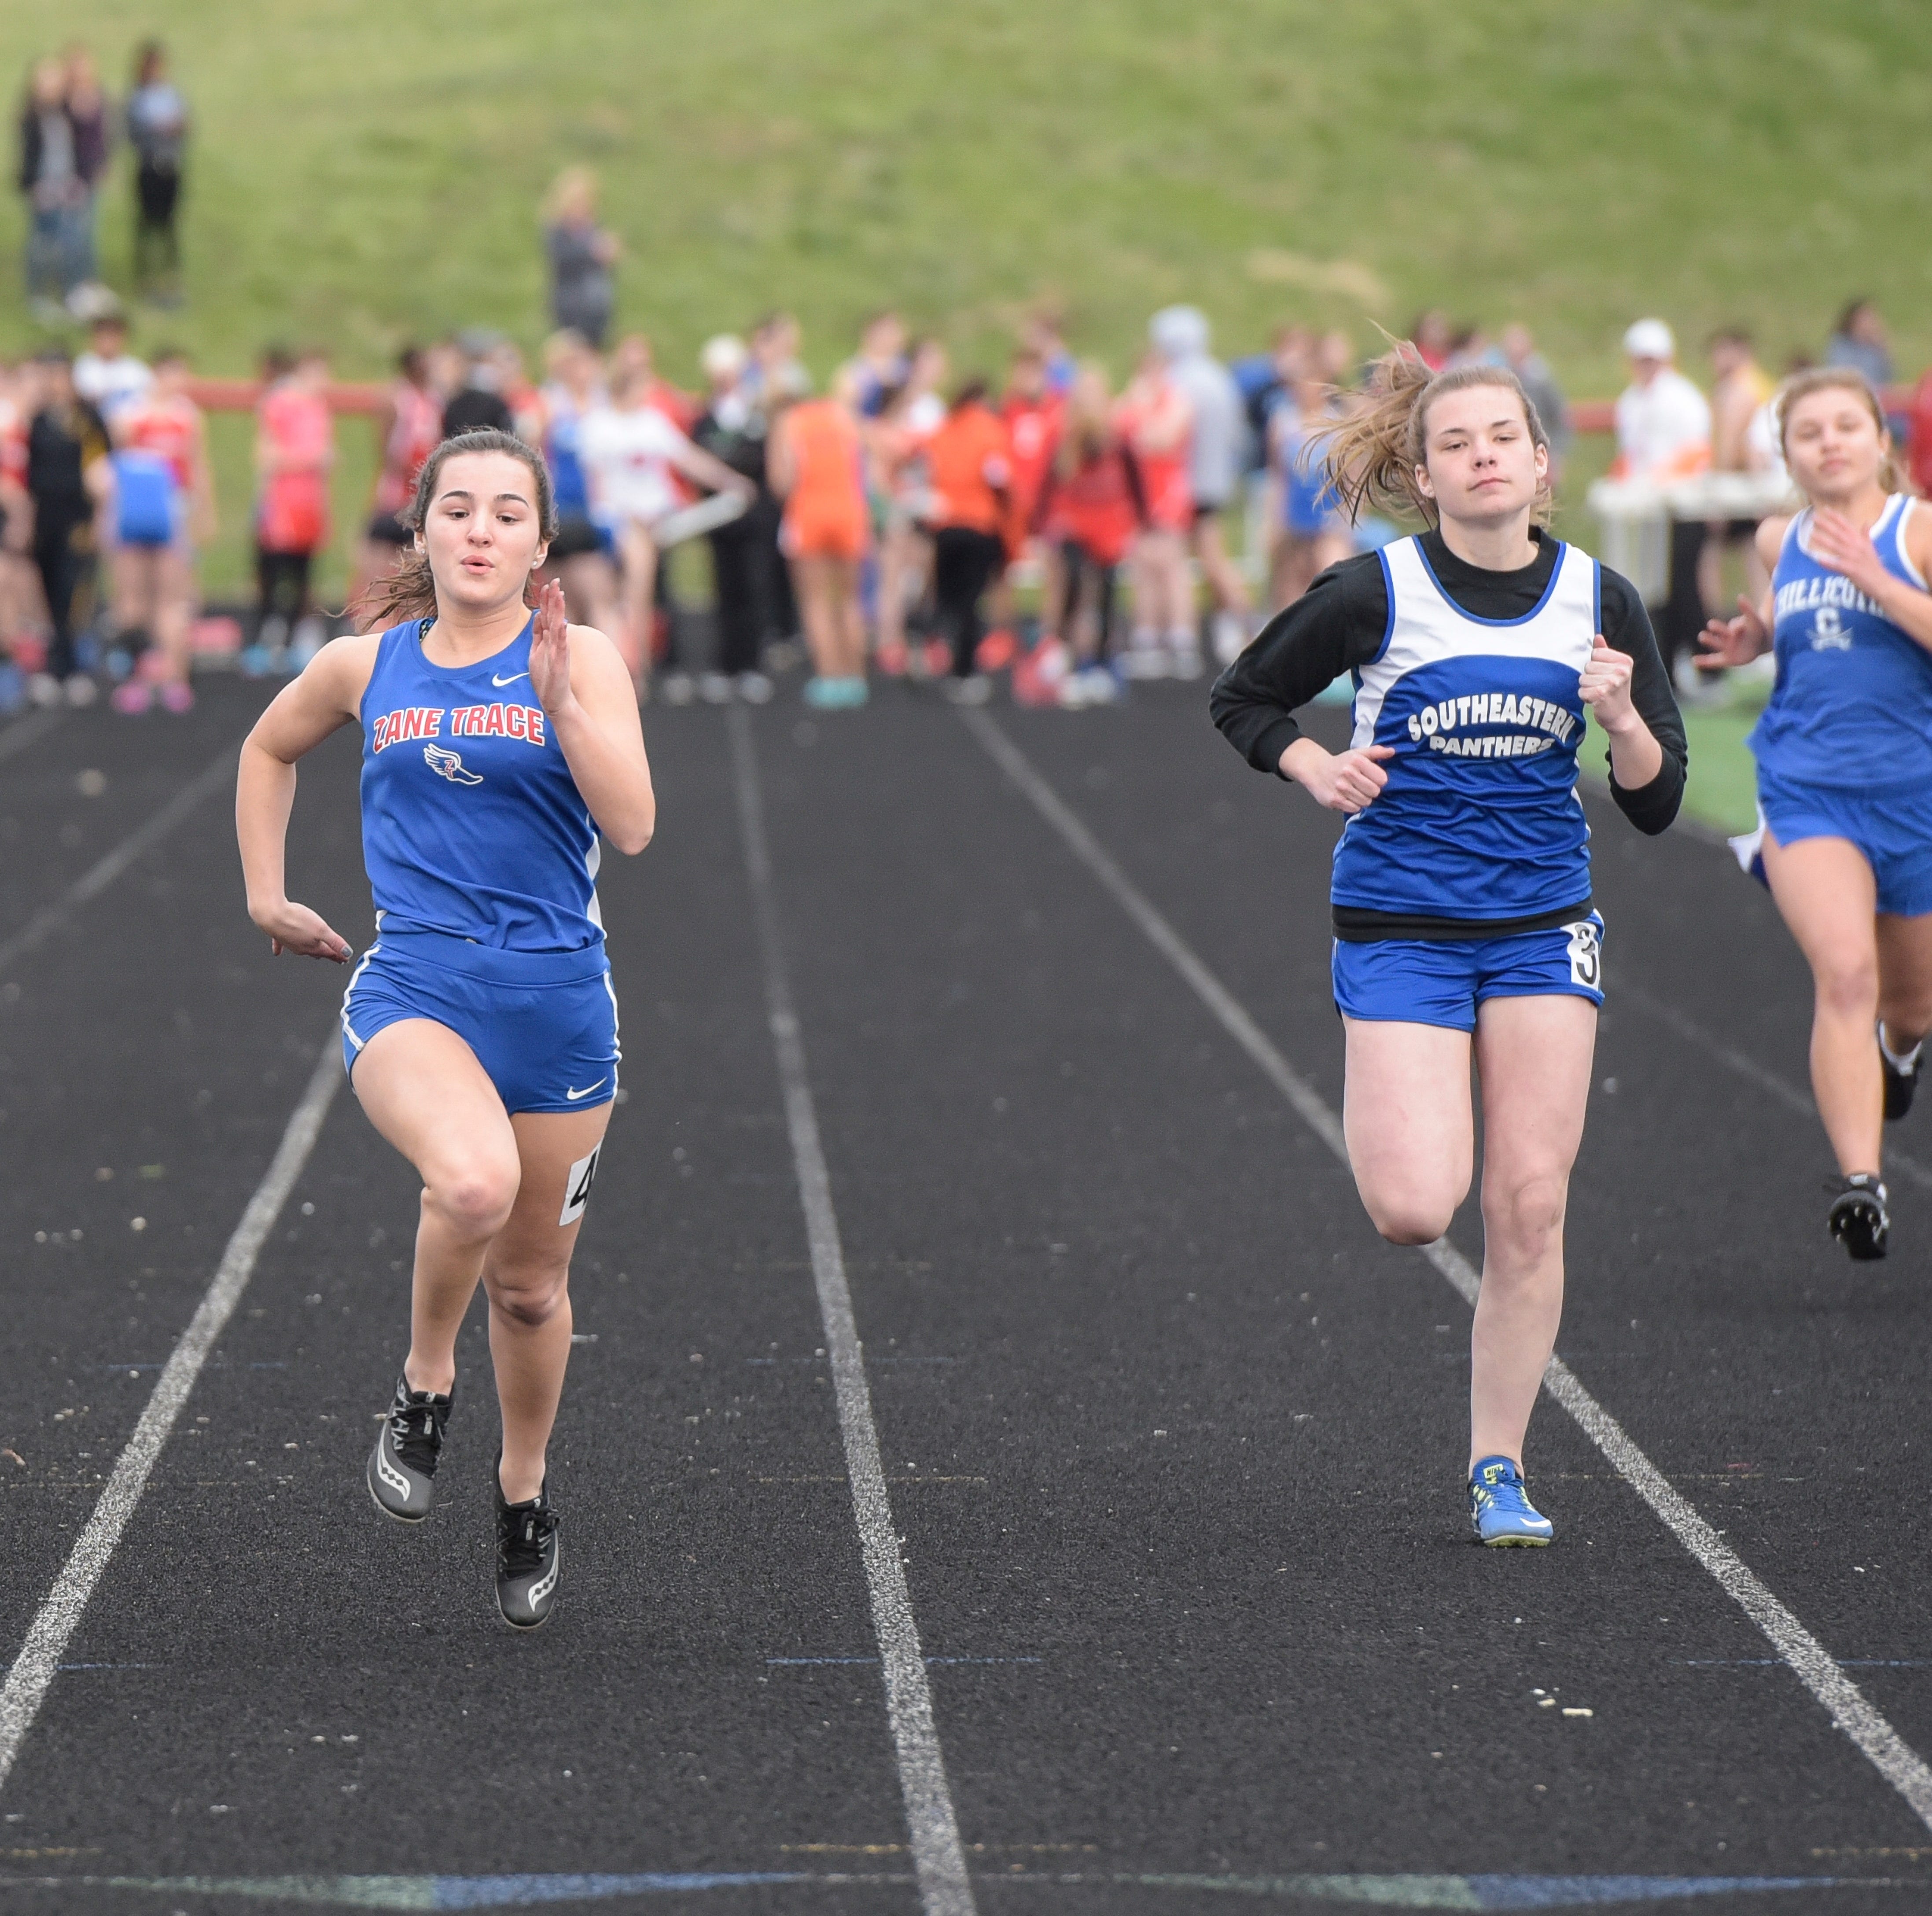 DAILY DIGEST: Local track teams compete at Zane Trace; Paint Valley baseball beats Clay